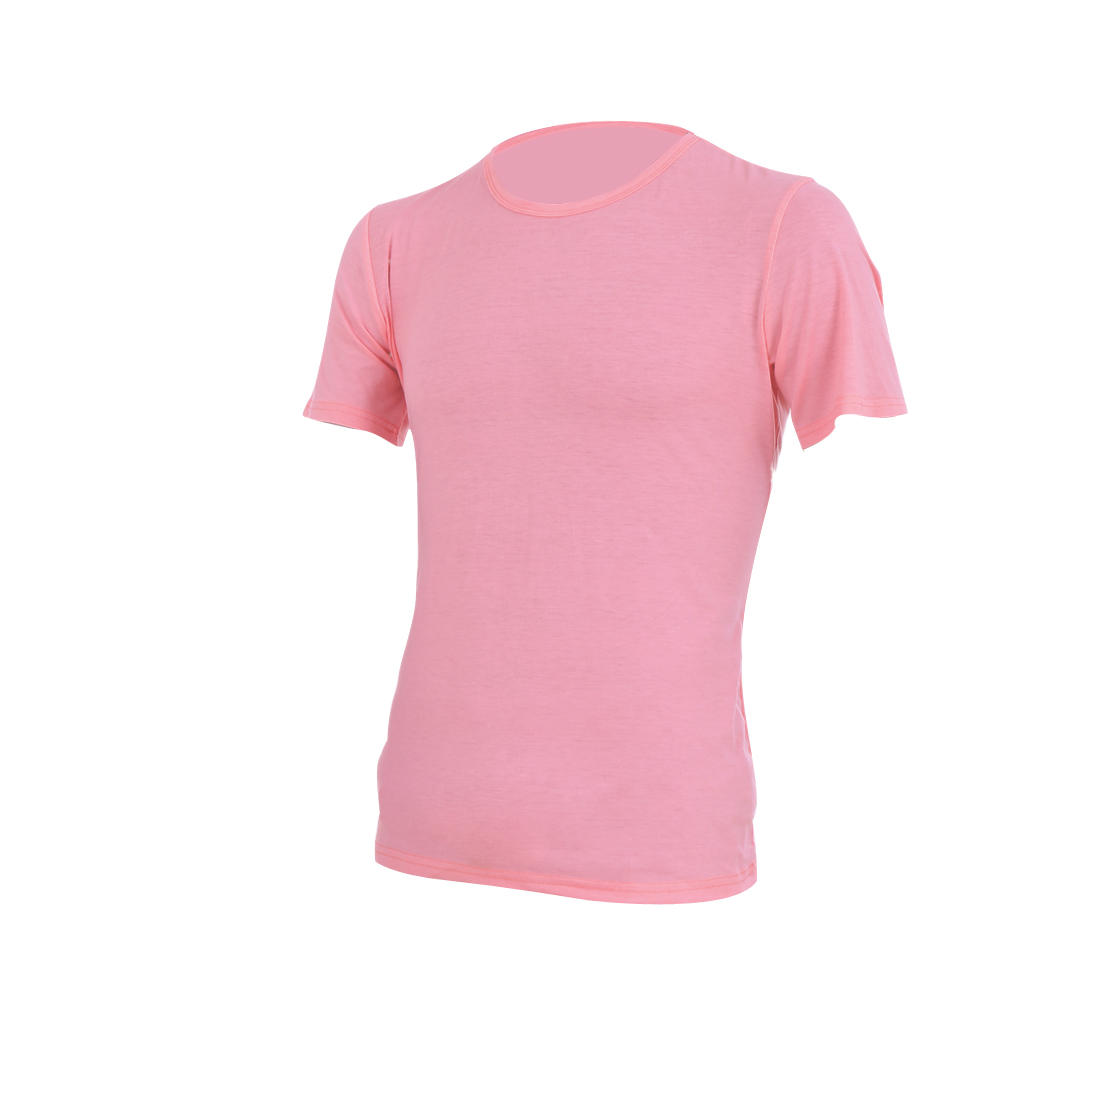 Pink M Solid Color Round Neck Slim Fit Design Stylish T-Shirt for Men